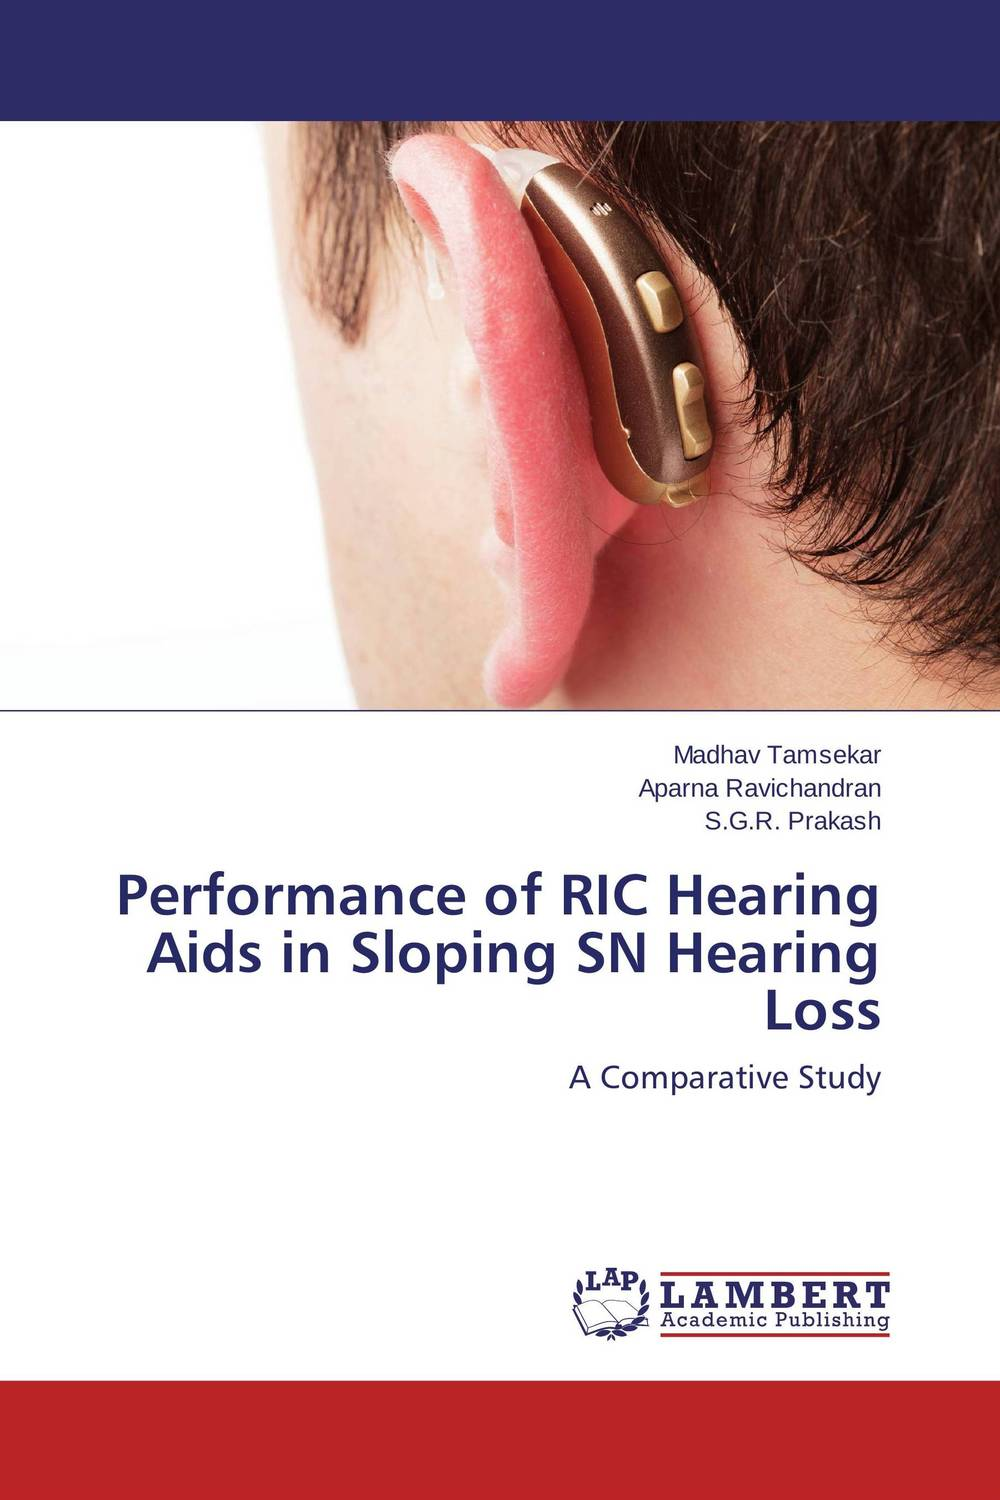 Performance of RIC Hearing Aids in Sloping SN Hearing Loss the teeth with root canal students to practice root canal preparation and filling actually